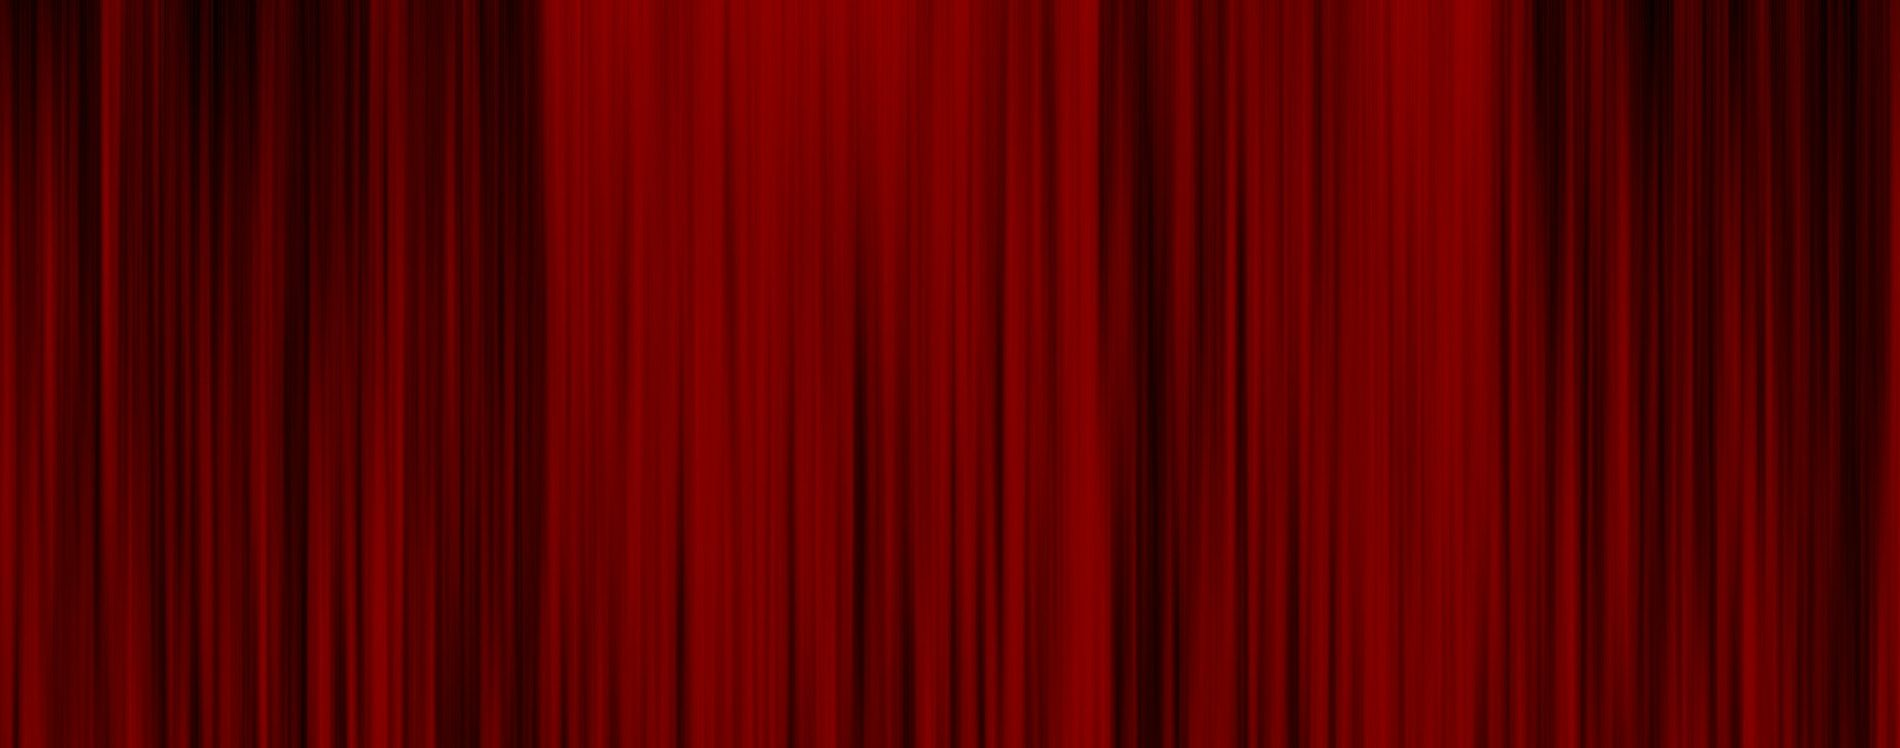 Pixabay - Free Clip Art - Theater Curtains